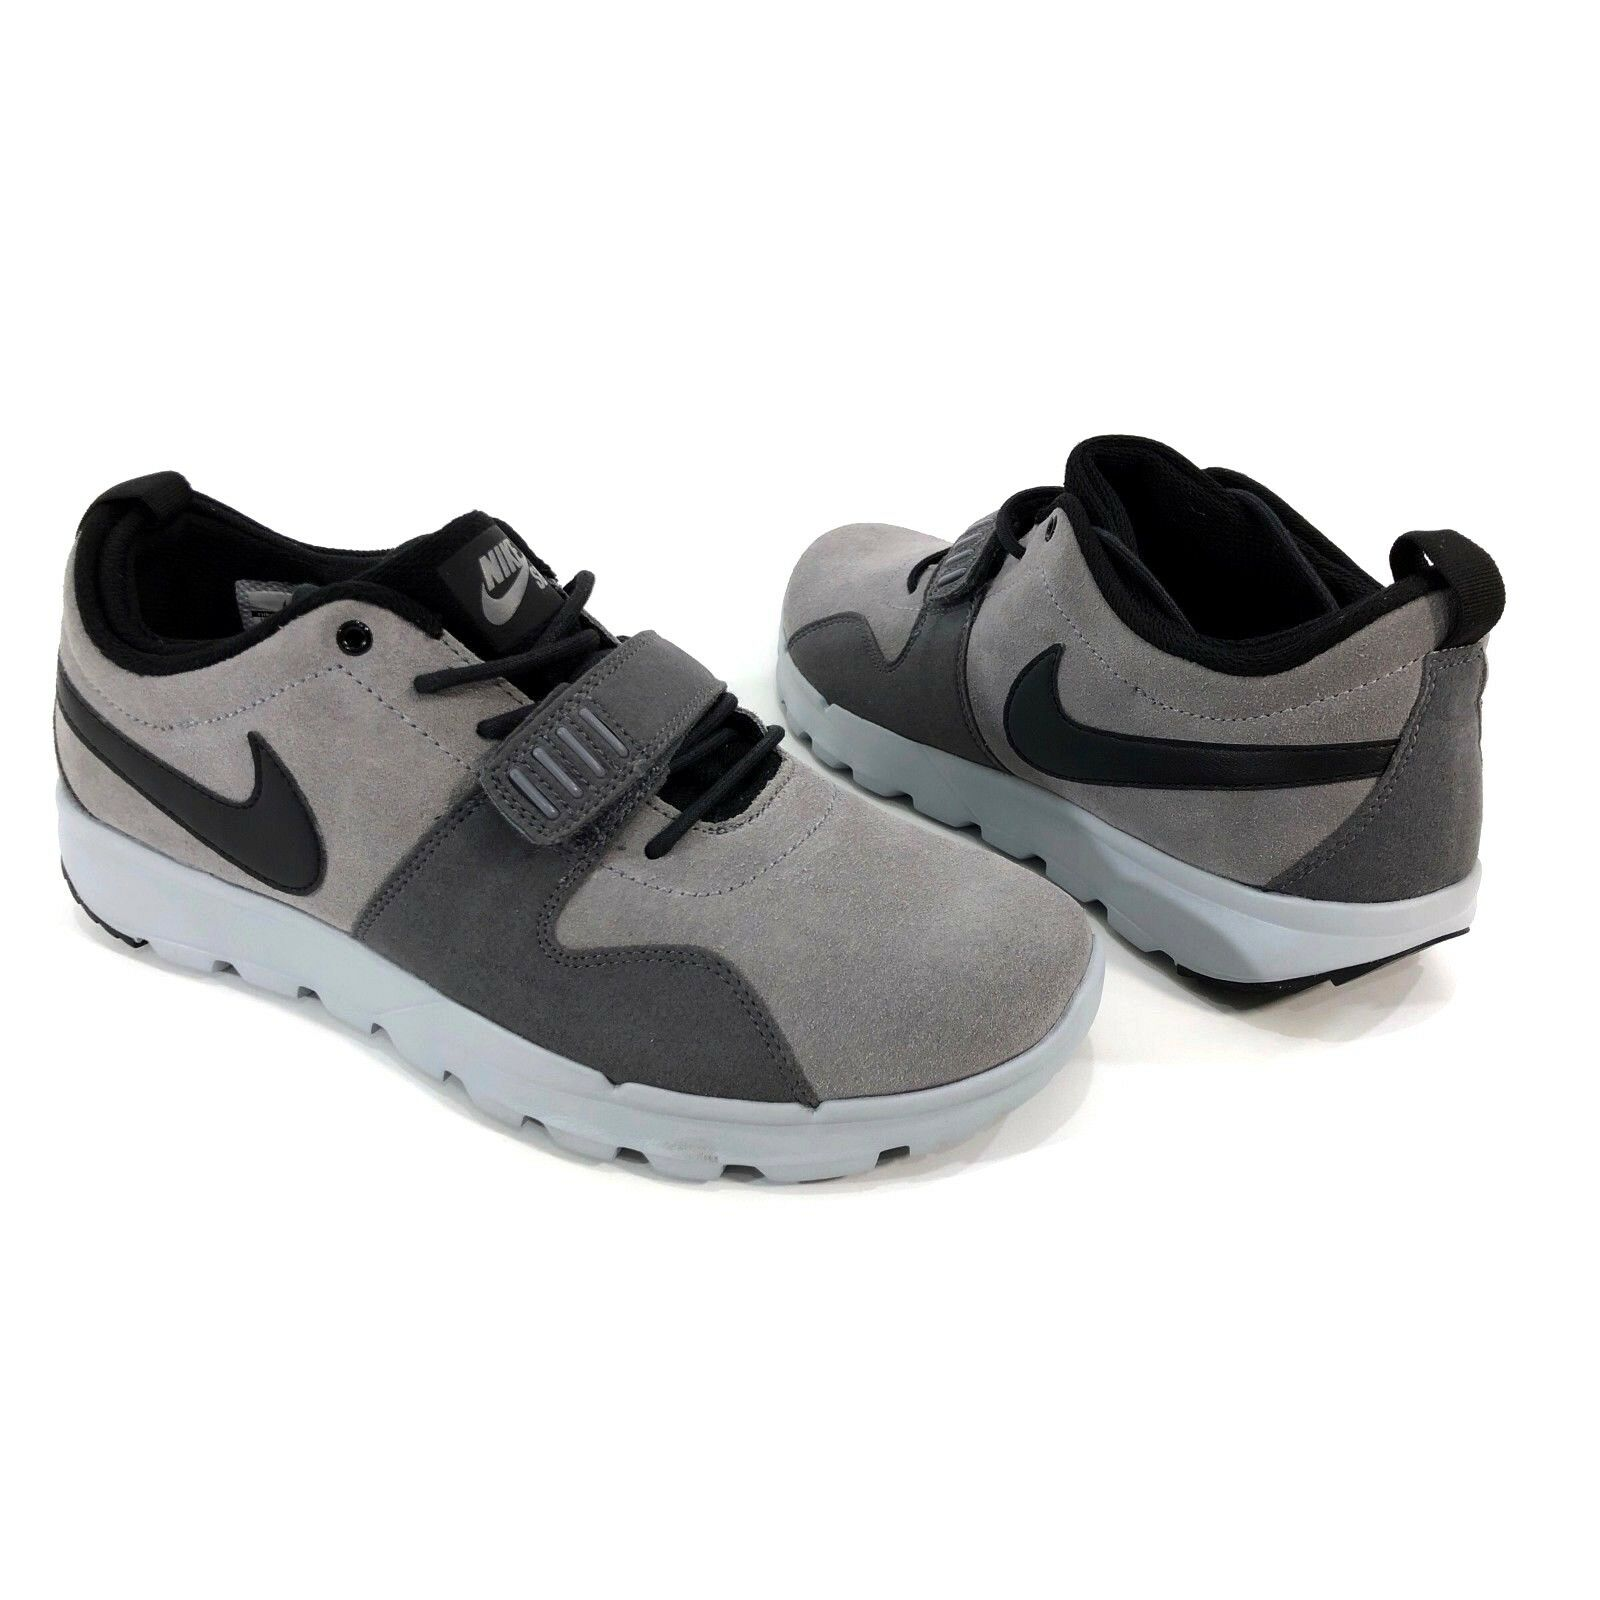 Nike SB Trainerendor L Men's Sz. Shoes 10.5 Grey Black Skateboarding Shoes Sz. 806309-001 fd31ad